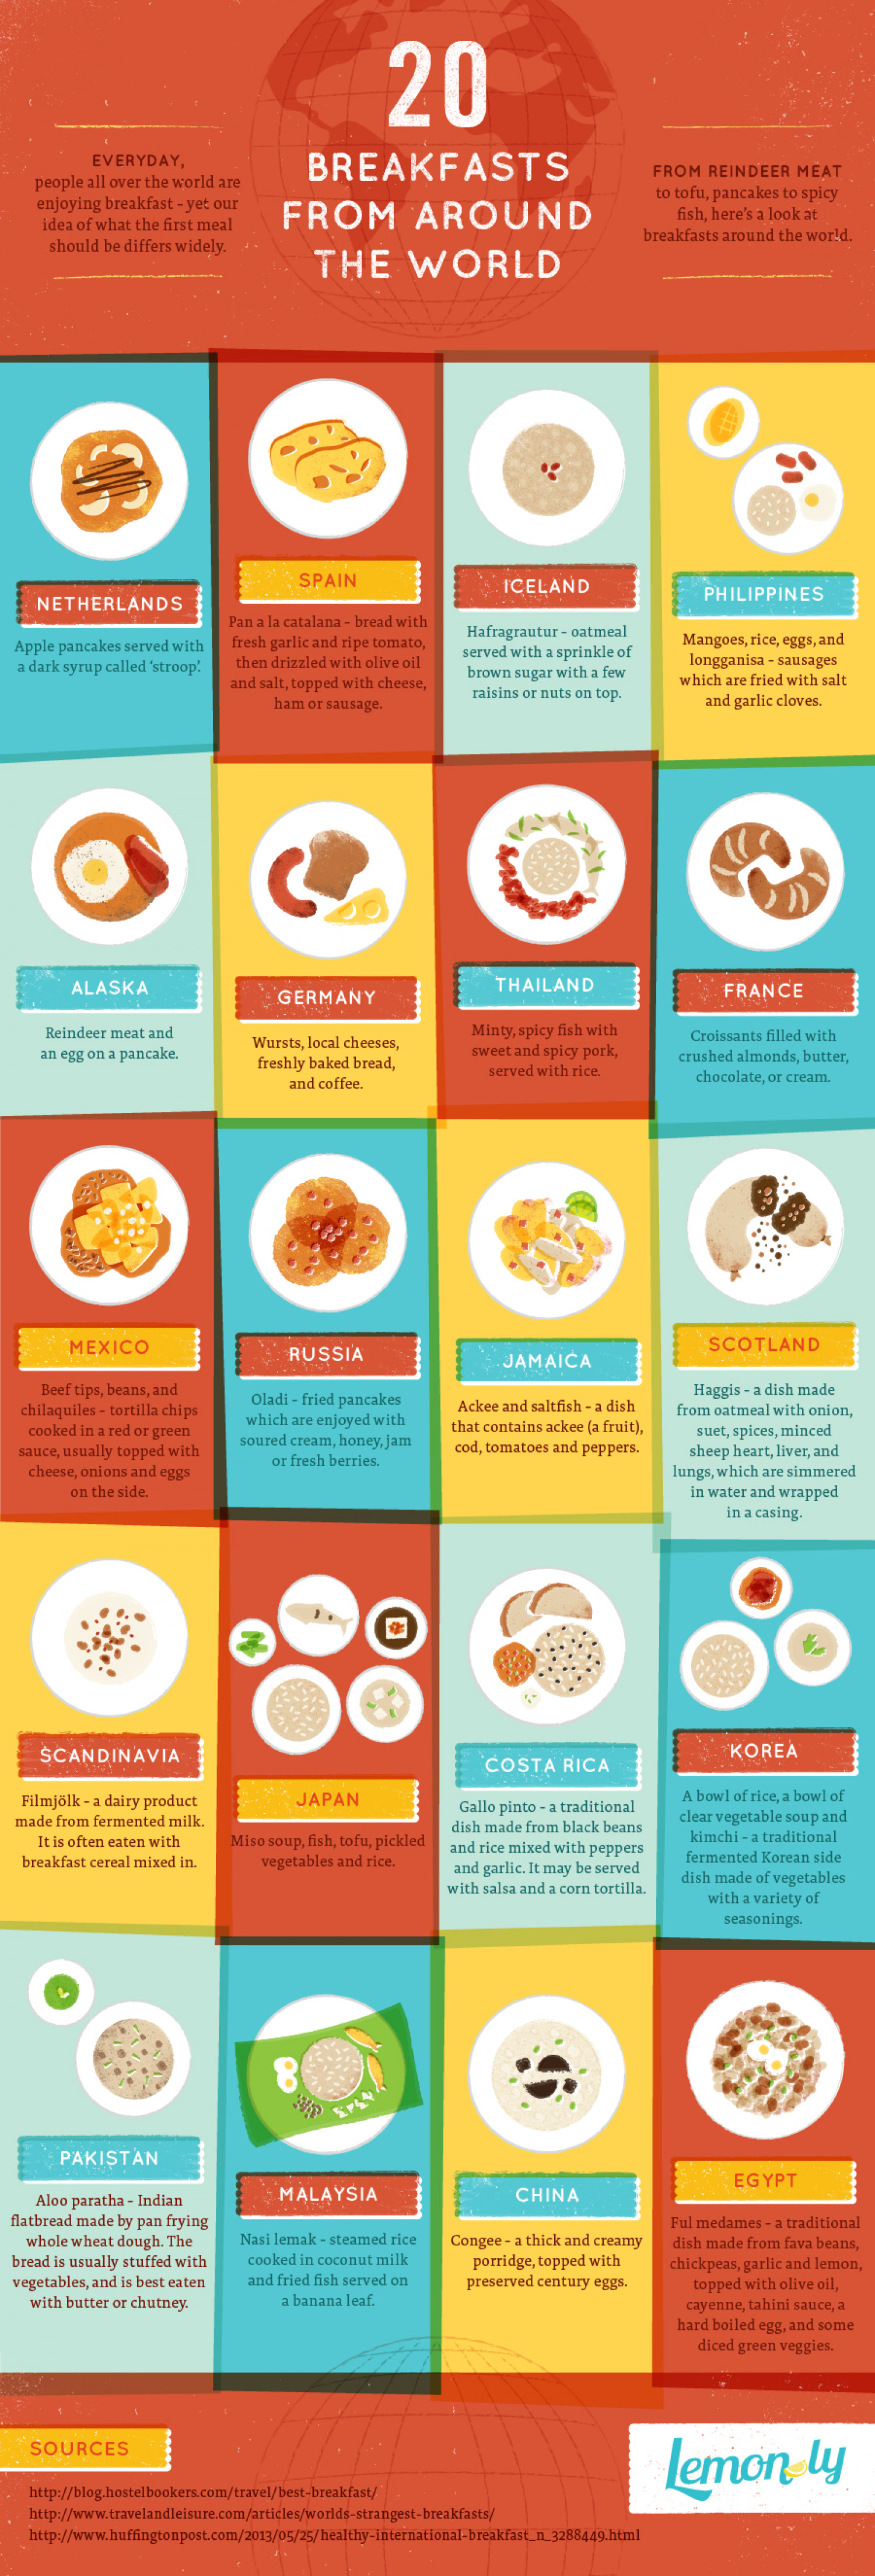 20 Breakfasts From Around the World  Infographic